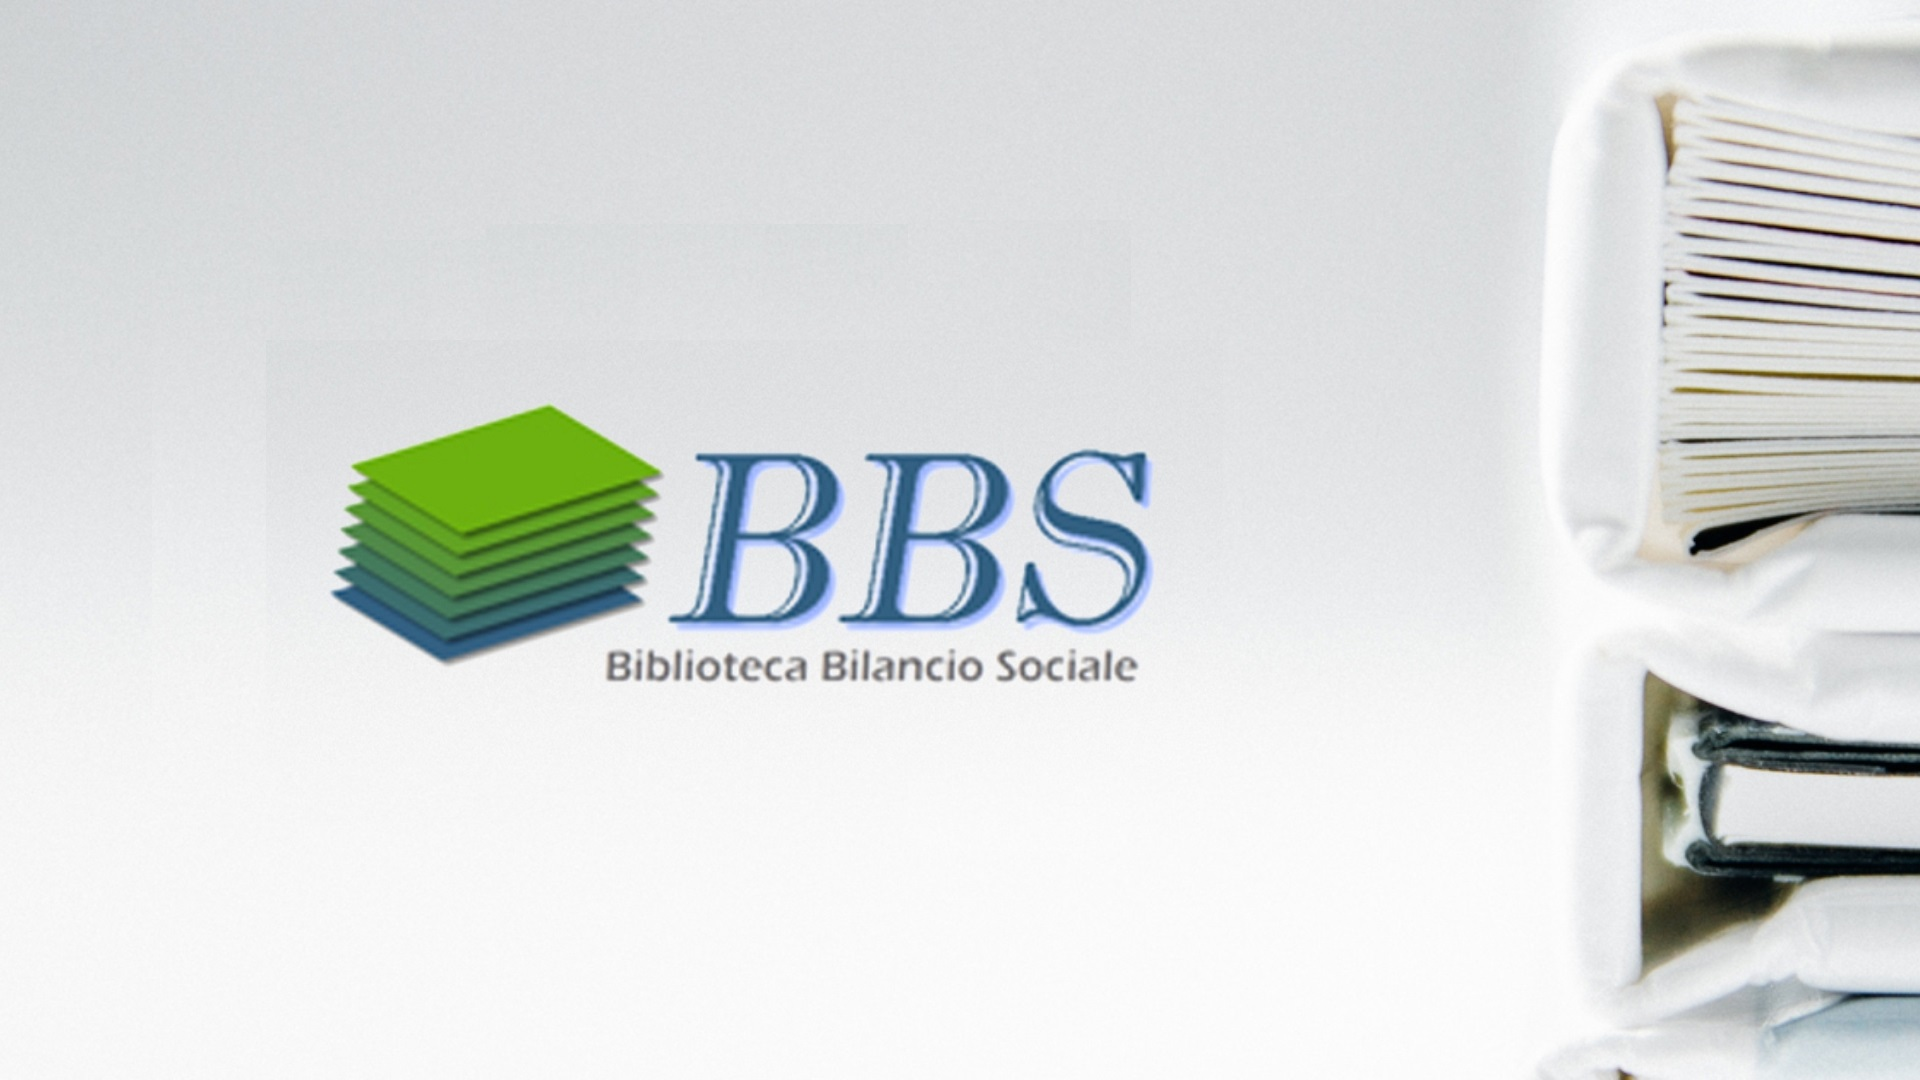 Engineering awarded the Special Stakeholder Prize as part of the 6th Edition of the BBS (Social Responsibility Library)